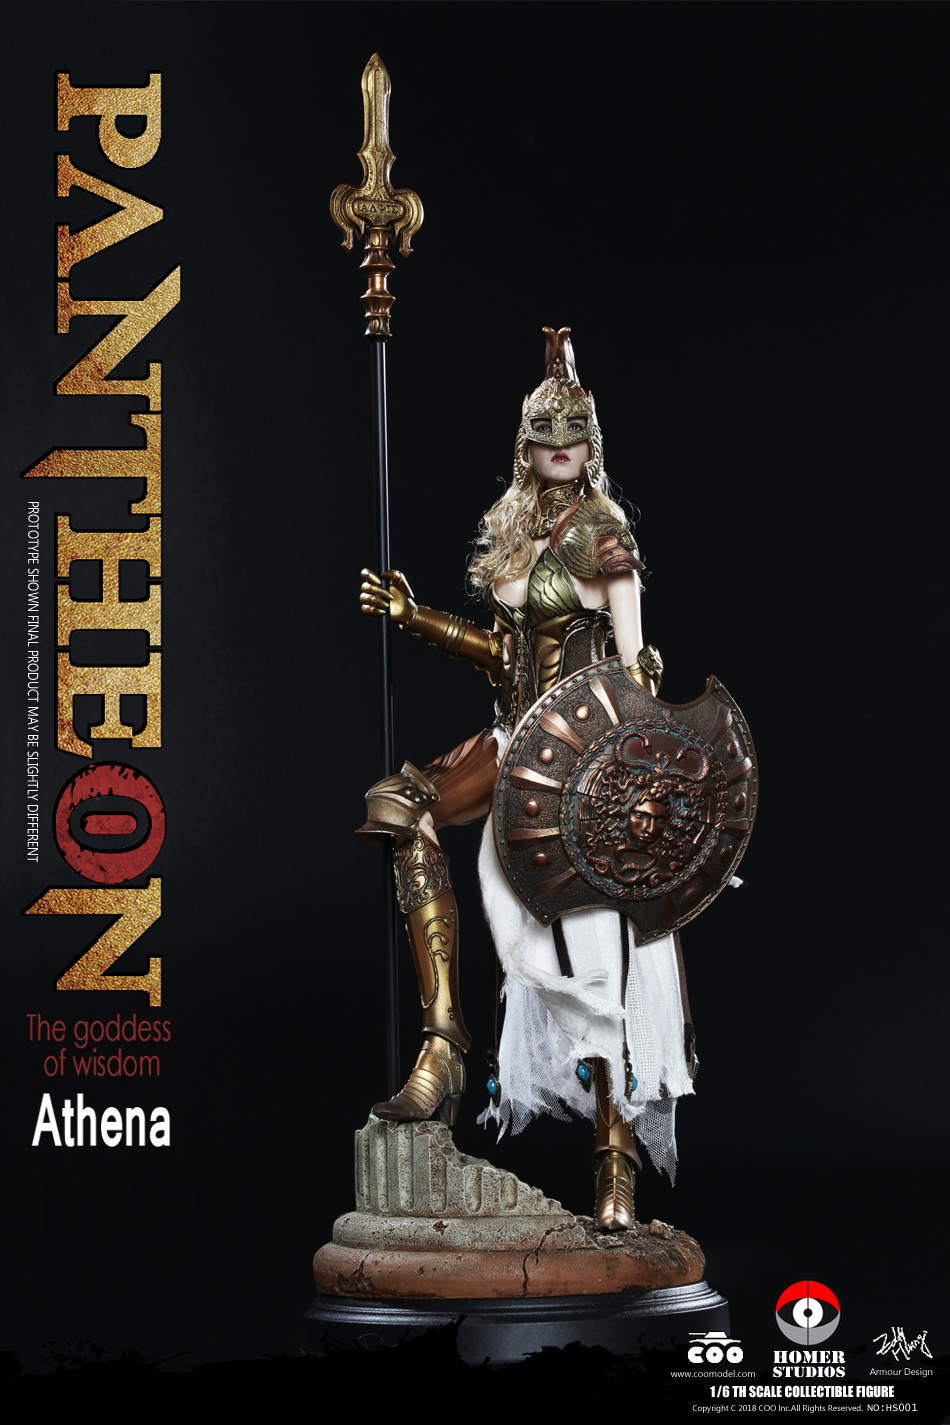 COOMODEL X HOMER HS001 PANTHEON ATHENA GODDESS OF WISDOM 1 6 Figure with Base